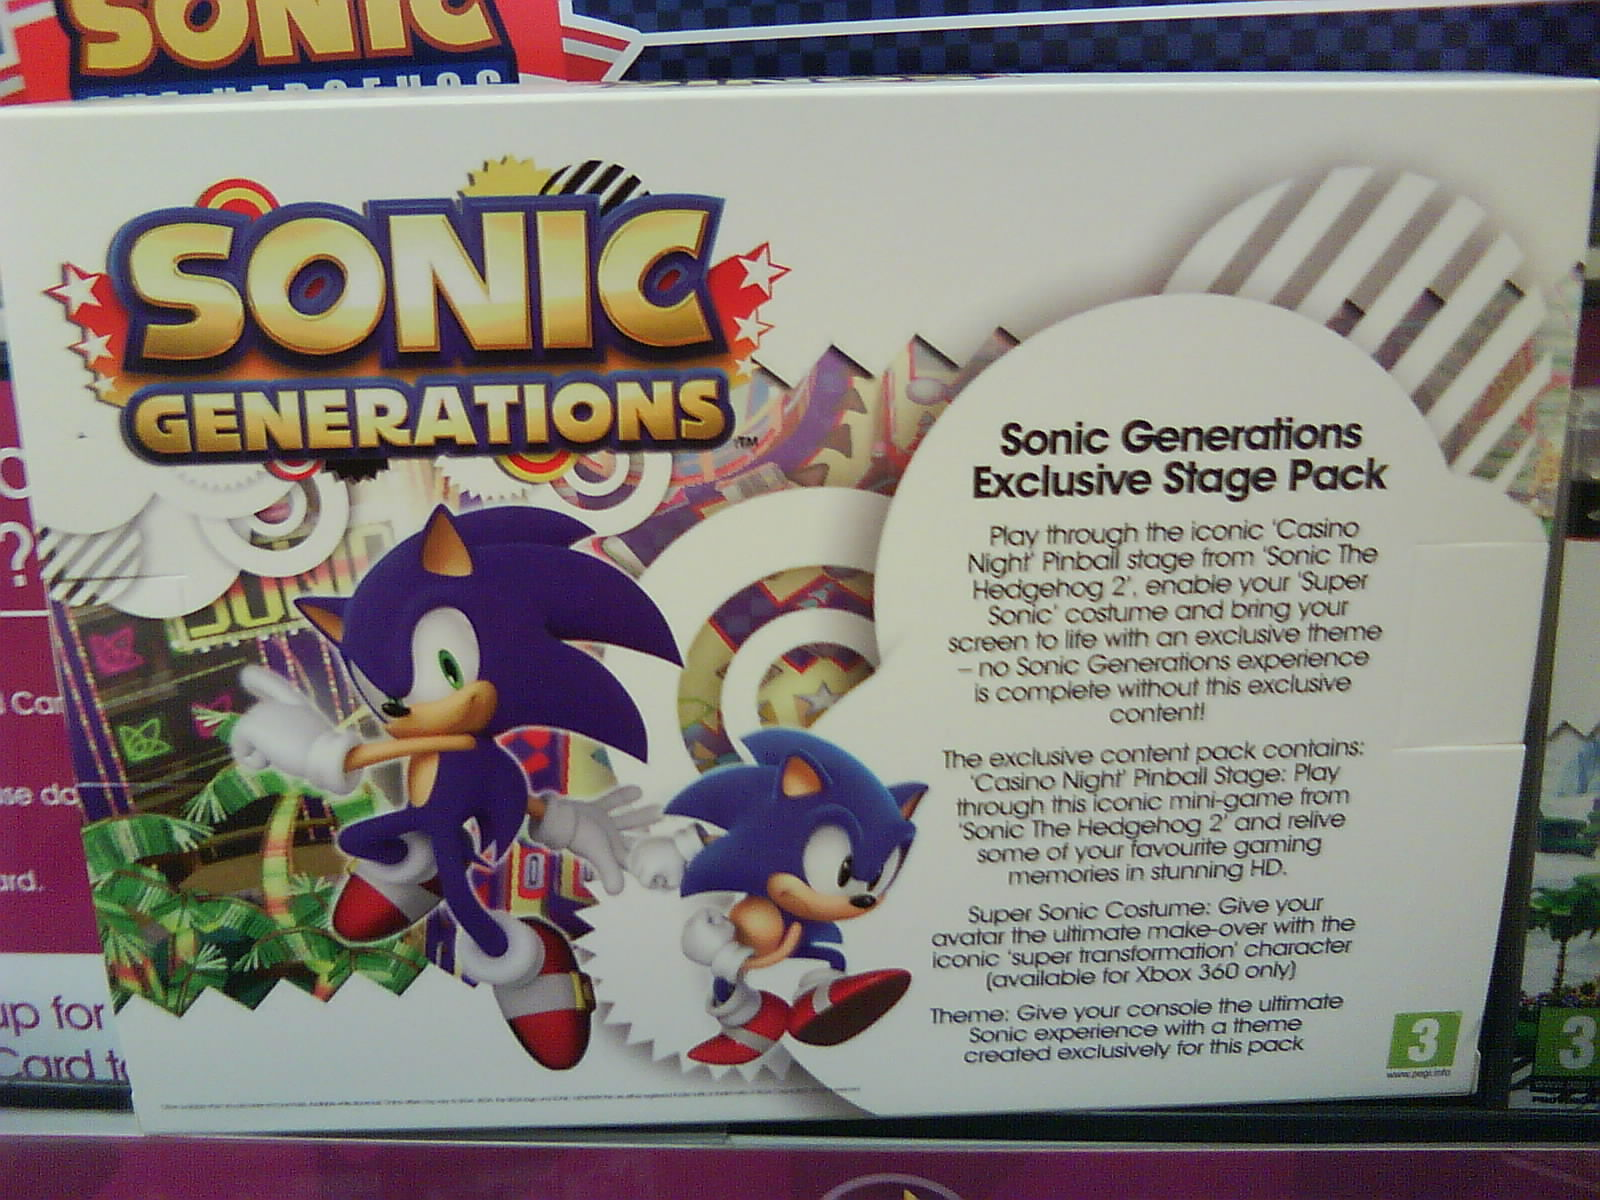 GAME Sonic Generations Pre-Order DLC Details